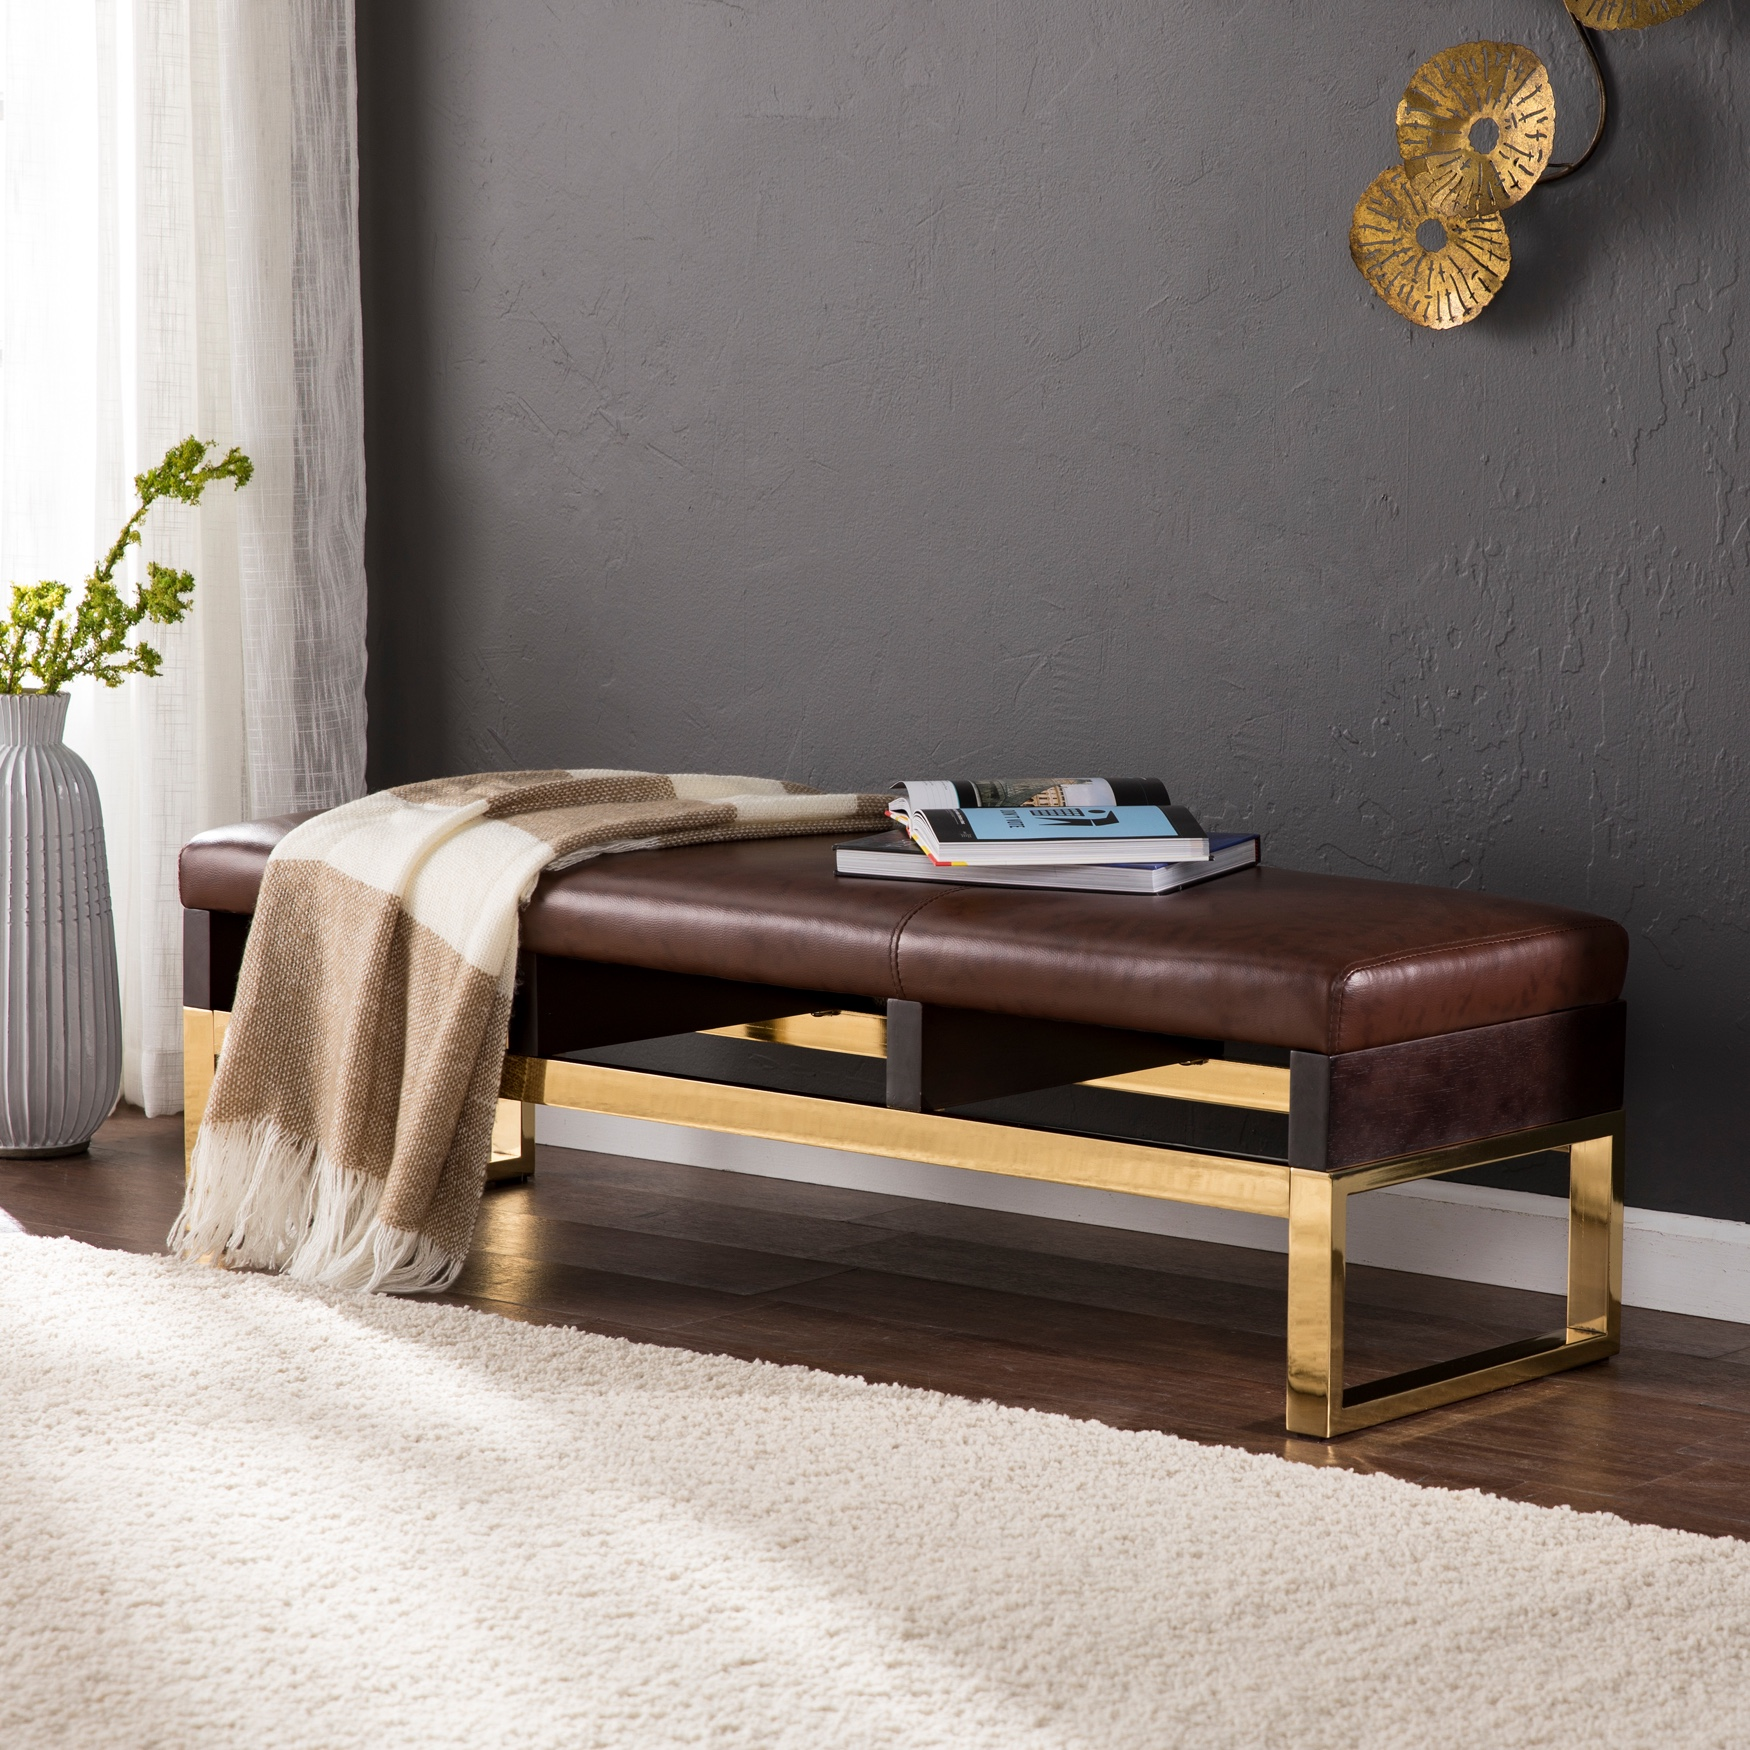 Renwick Decorative Bench - Midcentury Modern Style, EXPRESSO